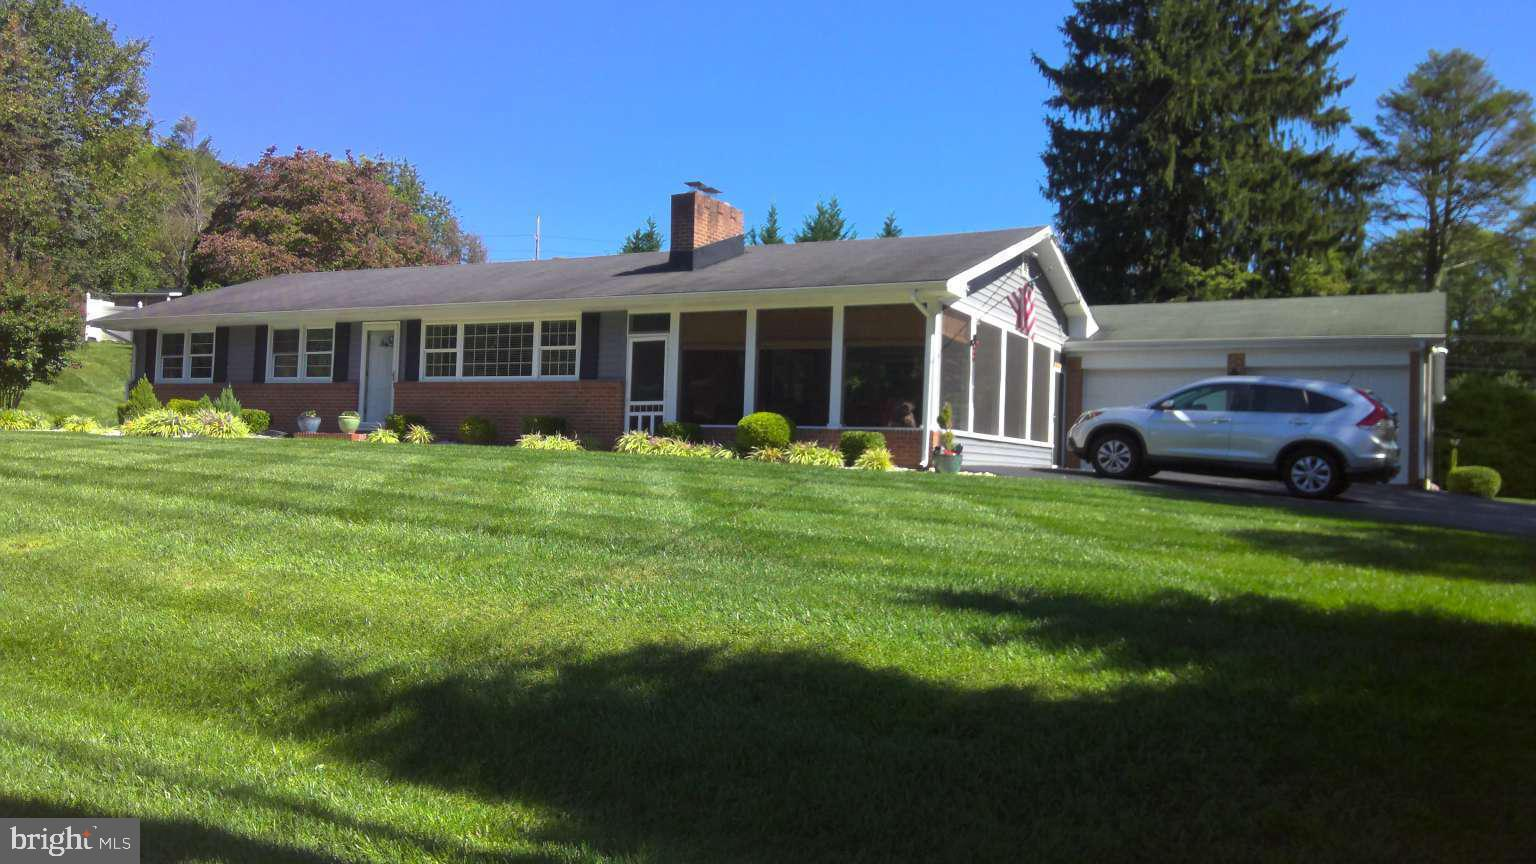 3Bd/2.5bath ranch w oversize 2 car garage, .78 acre lot. Move-in ready, partially fenced yard, screened porch with paddle fans and shades, access to garage and yard. LR w wood fireplace and glass door screen, crown molding, dining area. Kitchen has cherry cabinets, Corian counter tops, LG appliances. 3 bdrms, full bath w/shower enclosure, updated 1/2 bath off master. Lower level renovated w/large stacked stone, granite top bar and counter with sink, 2 wine coolers, upper and lower cabinets with mounted flat screen TV. Family area with mounted TV in stacked stone accent wall. Additional finished room can be used as game room or bedroom. Full bath w/jacquzzi tub, large vanity, linen closet. Unfinished section for storage, separate closet w/Samsung washer/dryer.